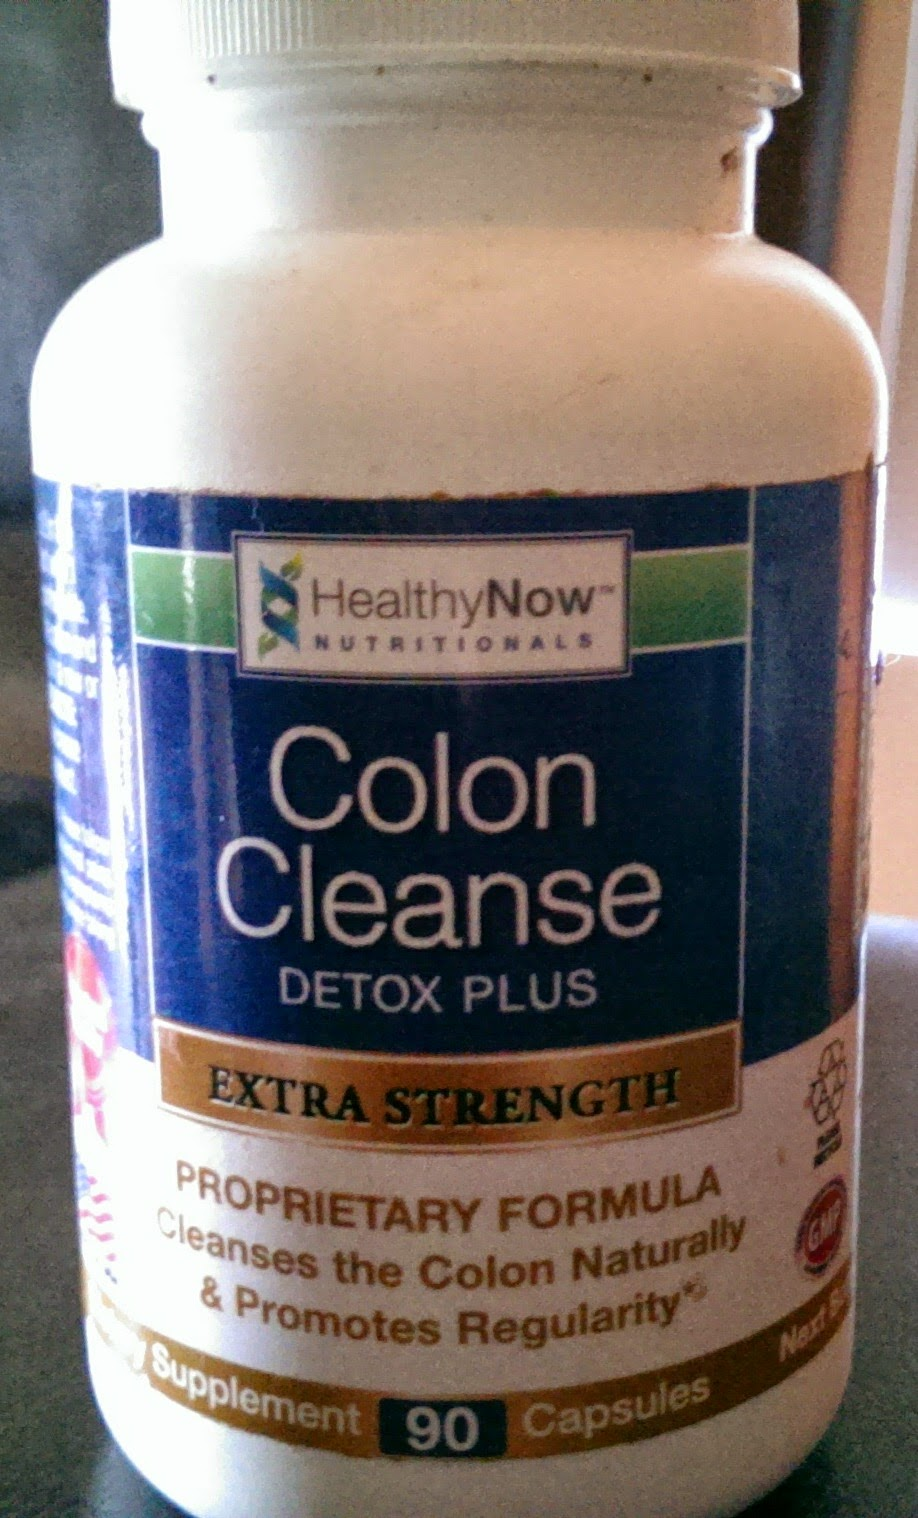 HealthyNow%2BColon%2BCleanse HealthyNow Colon Cleanse Detox Plus Review -Colon Cleanse Laxative